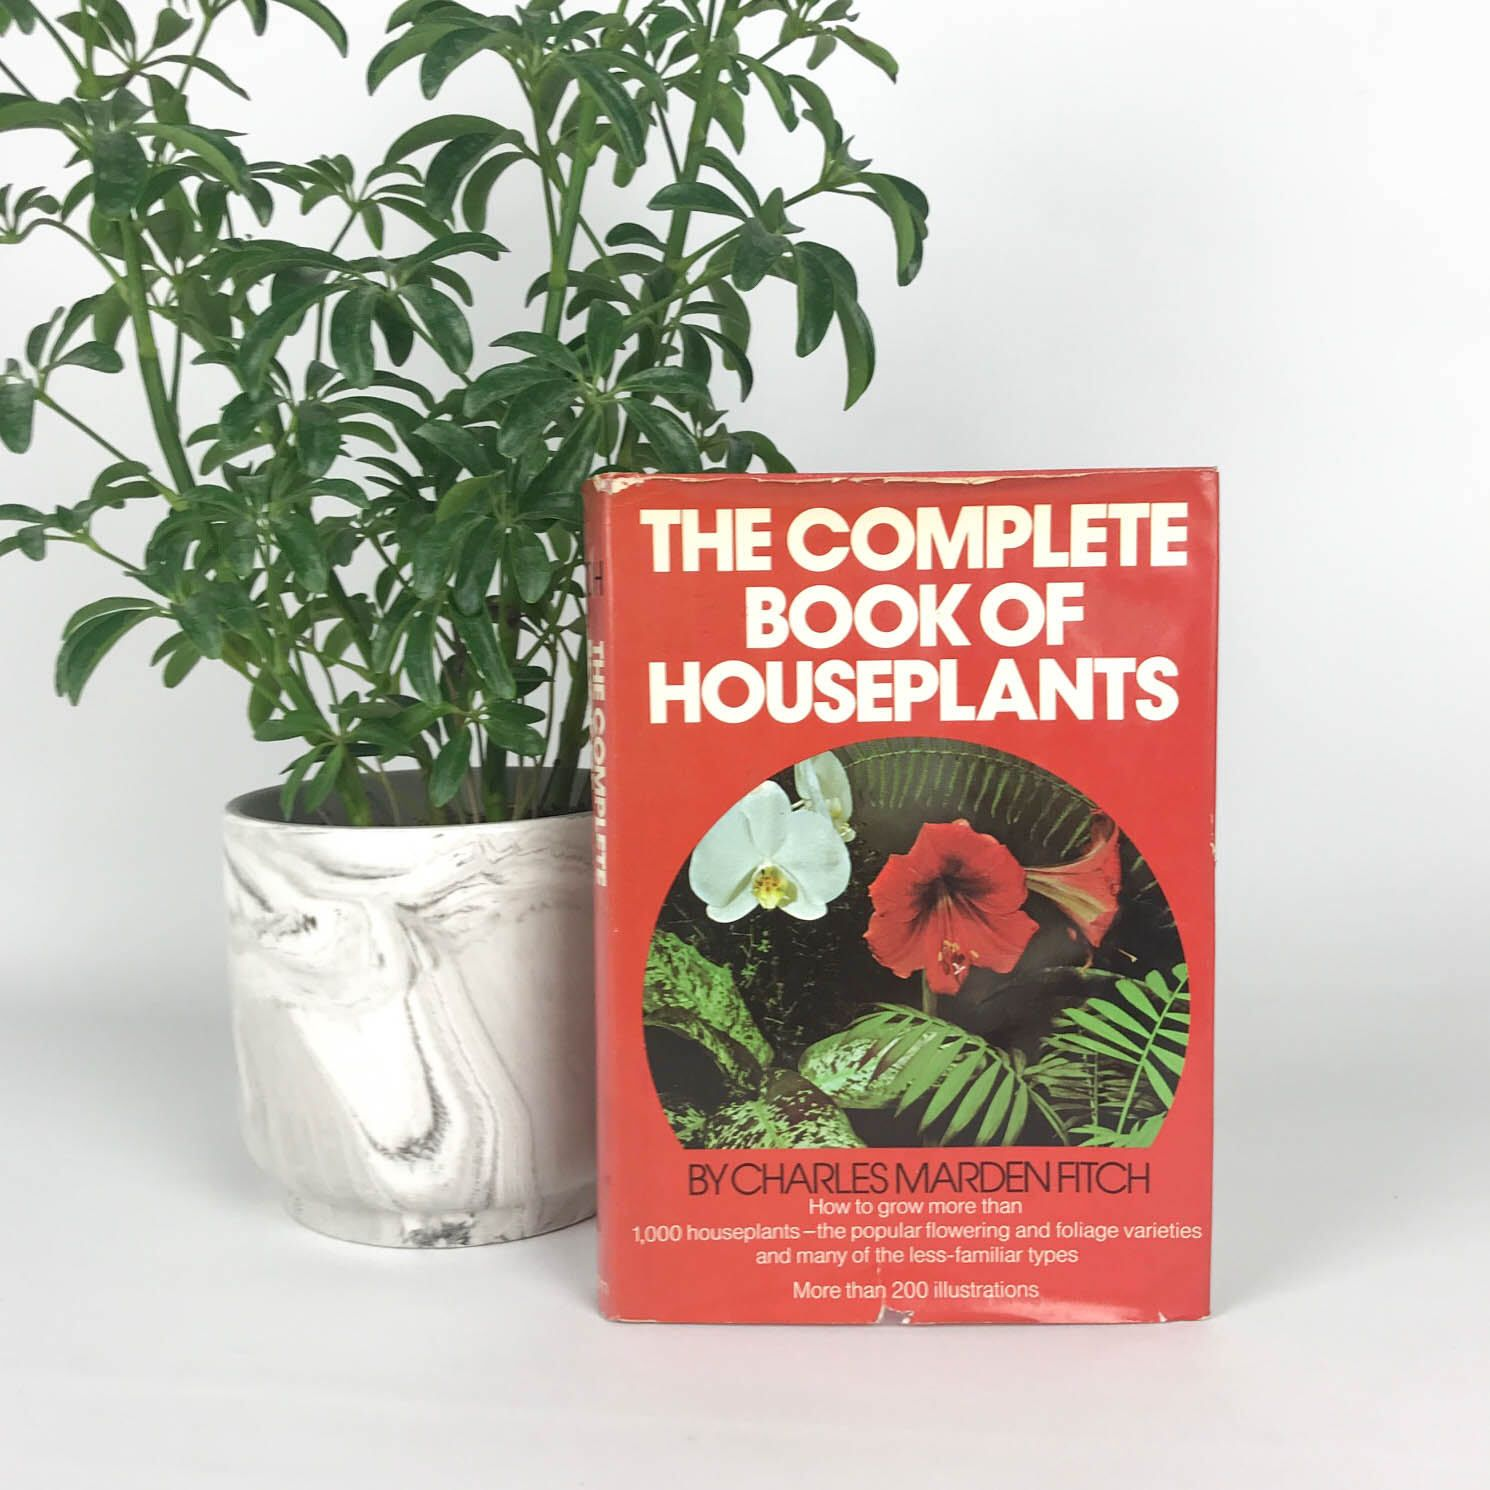 1970s Vintage Houseplant Book Vintage Gardening Book Coffee Table Book Plant Care Book 70s Books Old Books B Plant Book Gardening Books Vintage Gardening